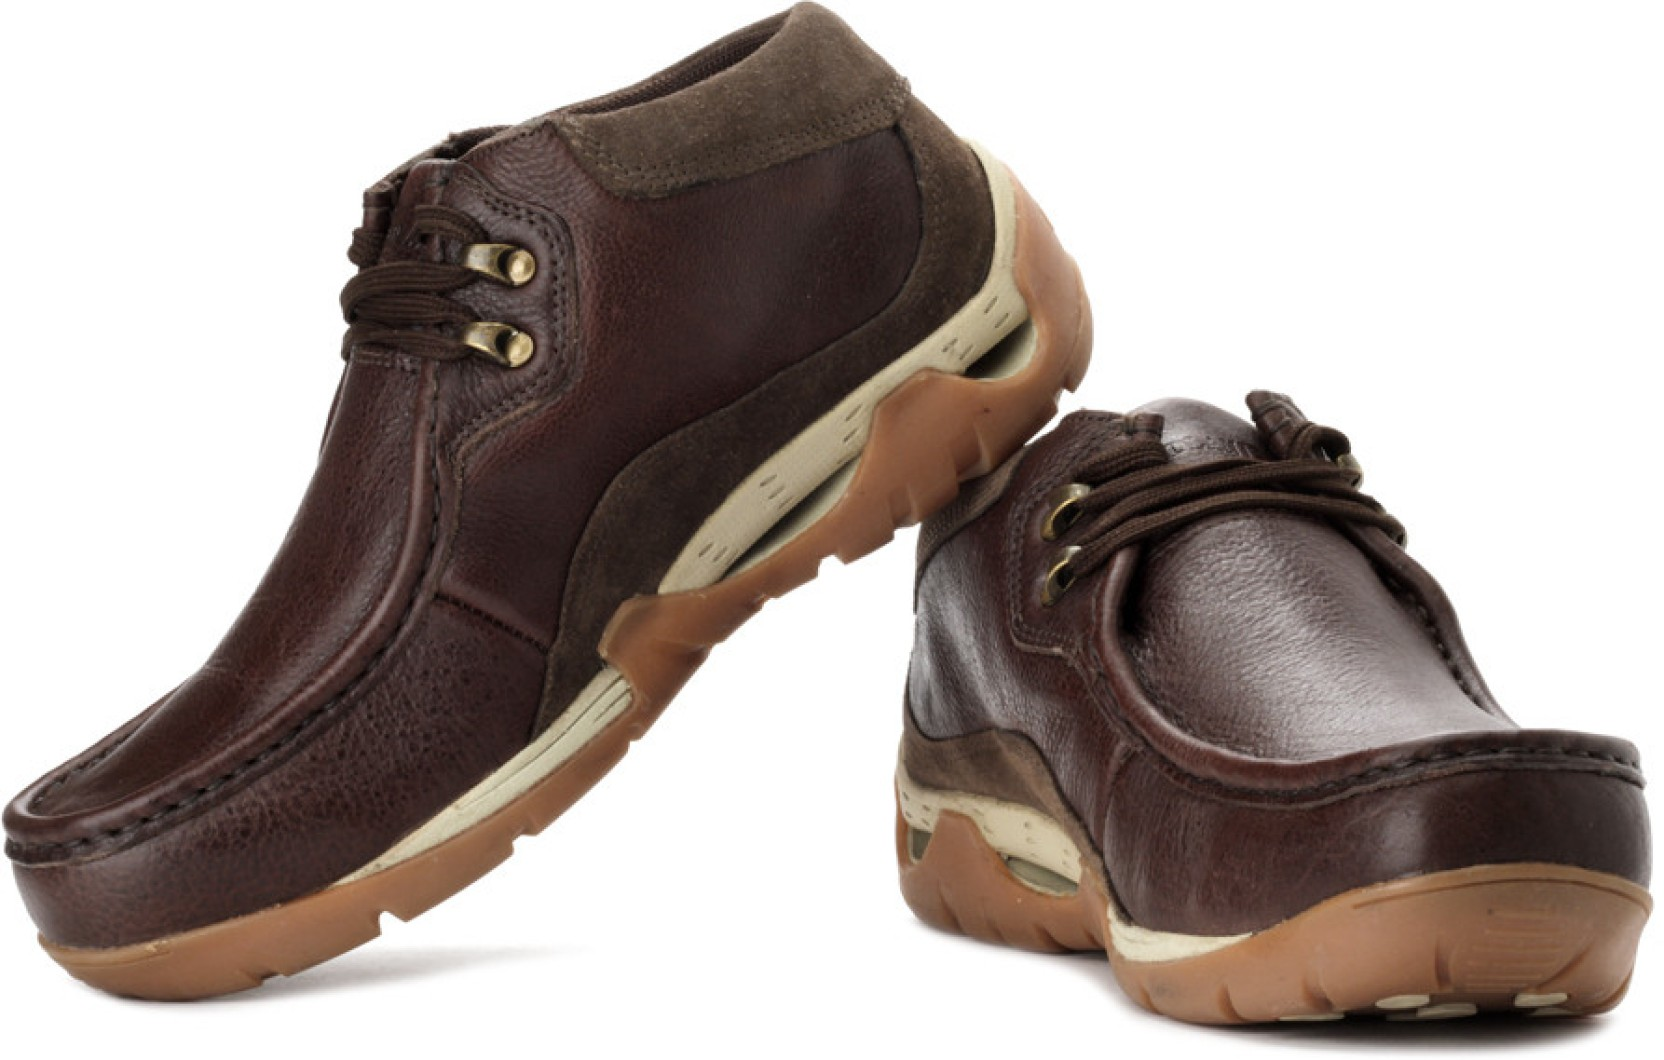 Woodland Outdoors Shoes - Buy Dbrown Color Woodland ...